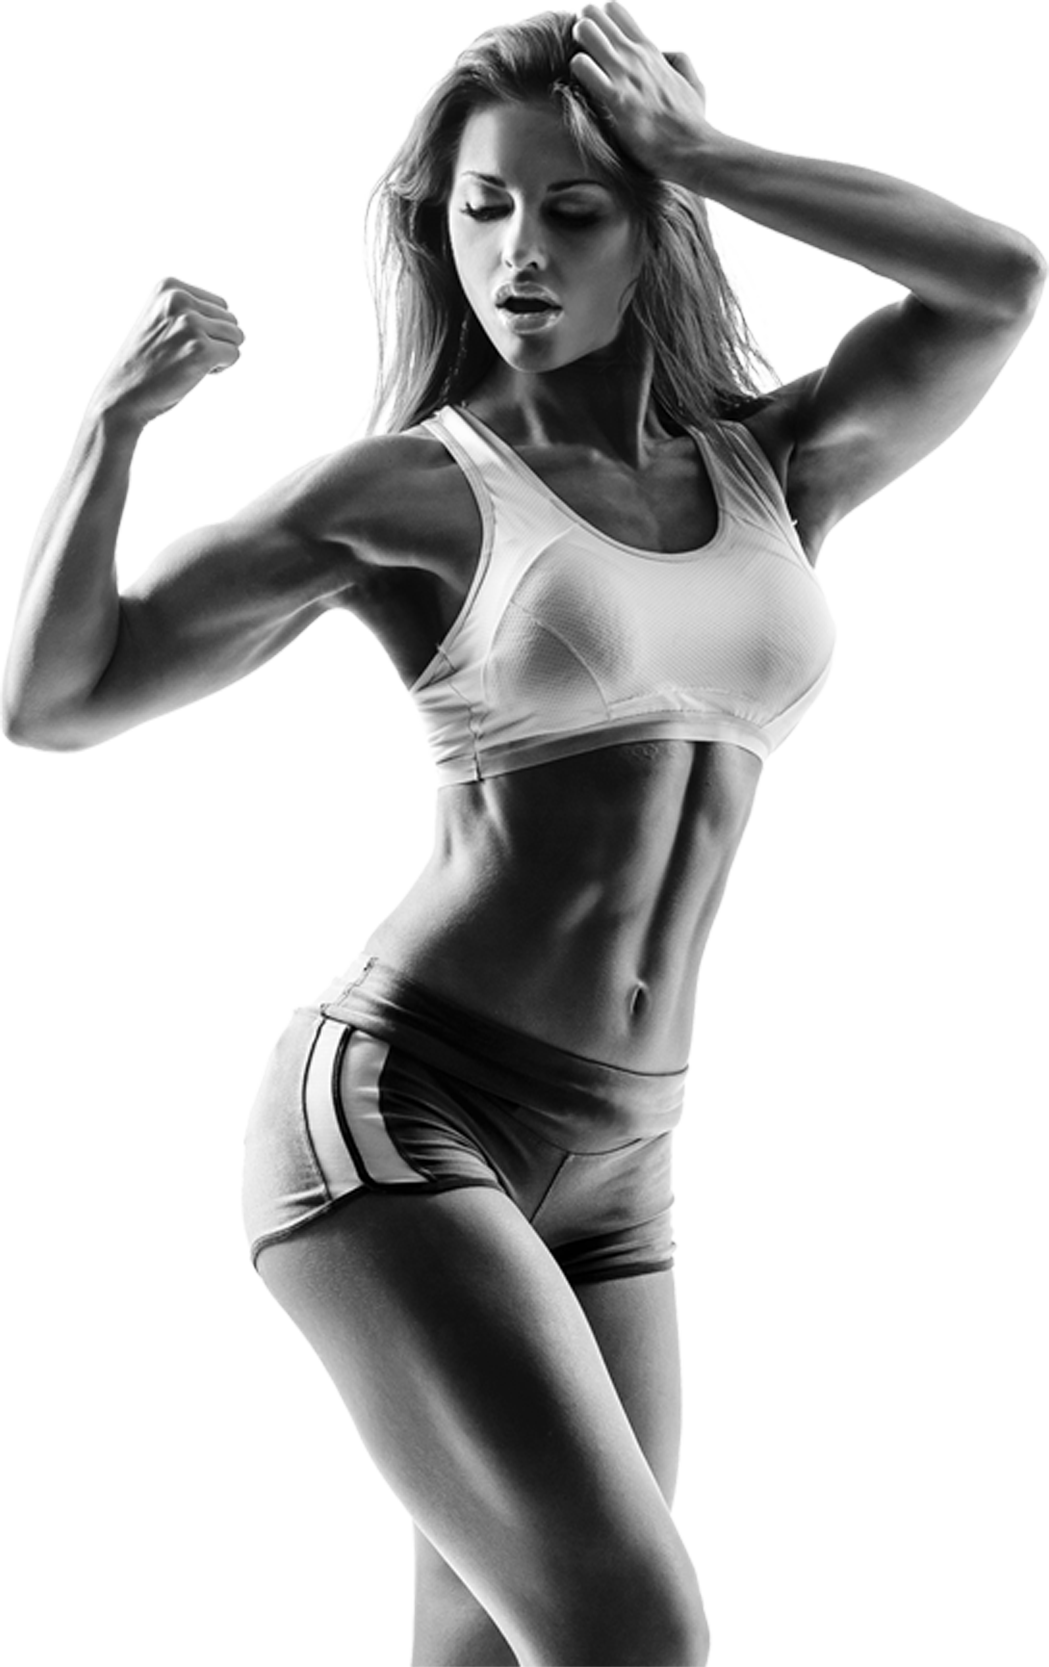 Muscle girl png. She lifts strength training